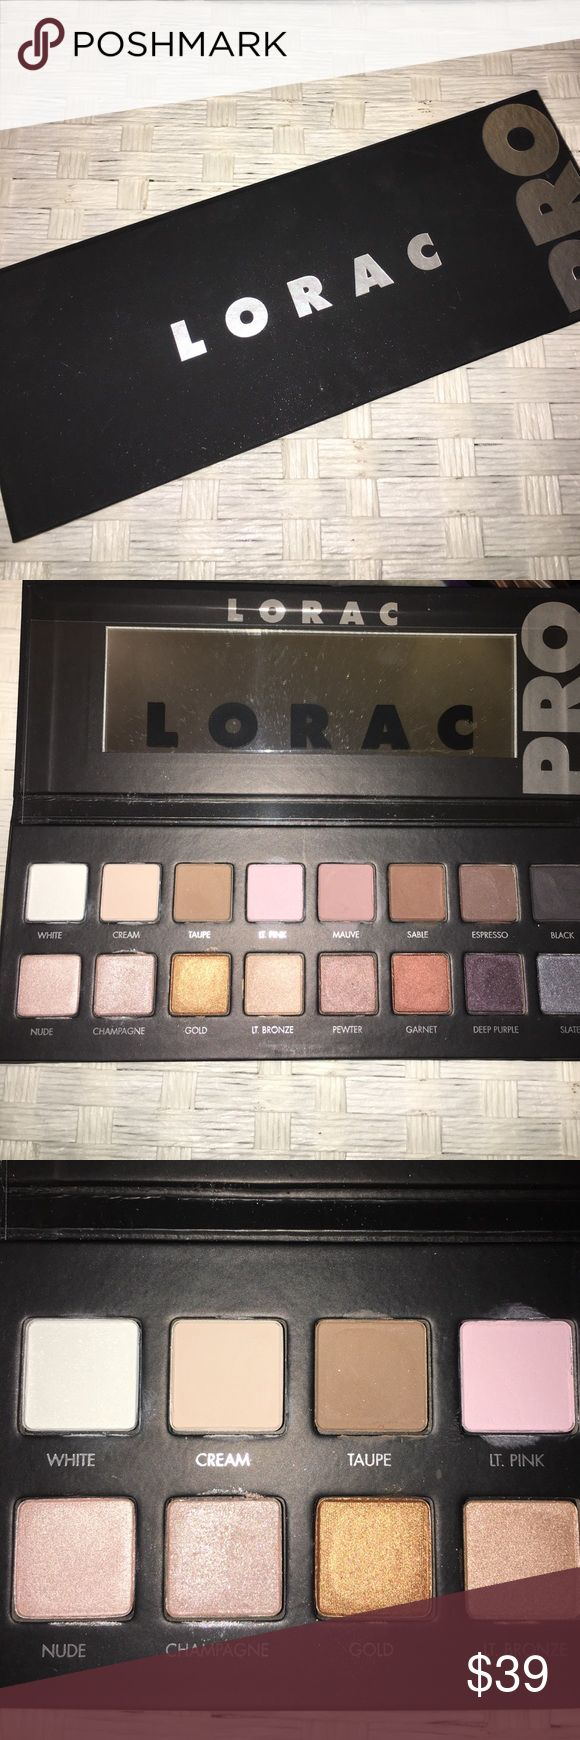 ✨Lorca Pro Eyeshadow Palette 1✨ Created by celebrity makeup artist Carol Shaw, this PRO artistry palette is packed with 8 shimmer and 8 matte eye shadows. LORAC's velvety-smooth shadows are infused with soothing botanicals and are ultra-pigmented to perform wet or dry so you can shade, shadow, line and define your eyes, just like a PRO!